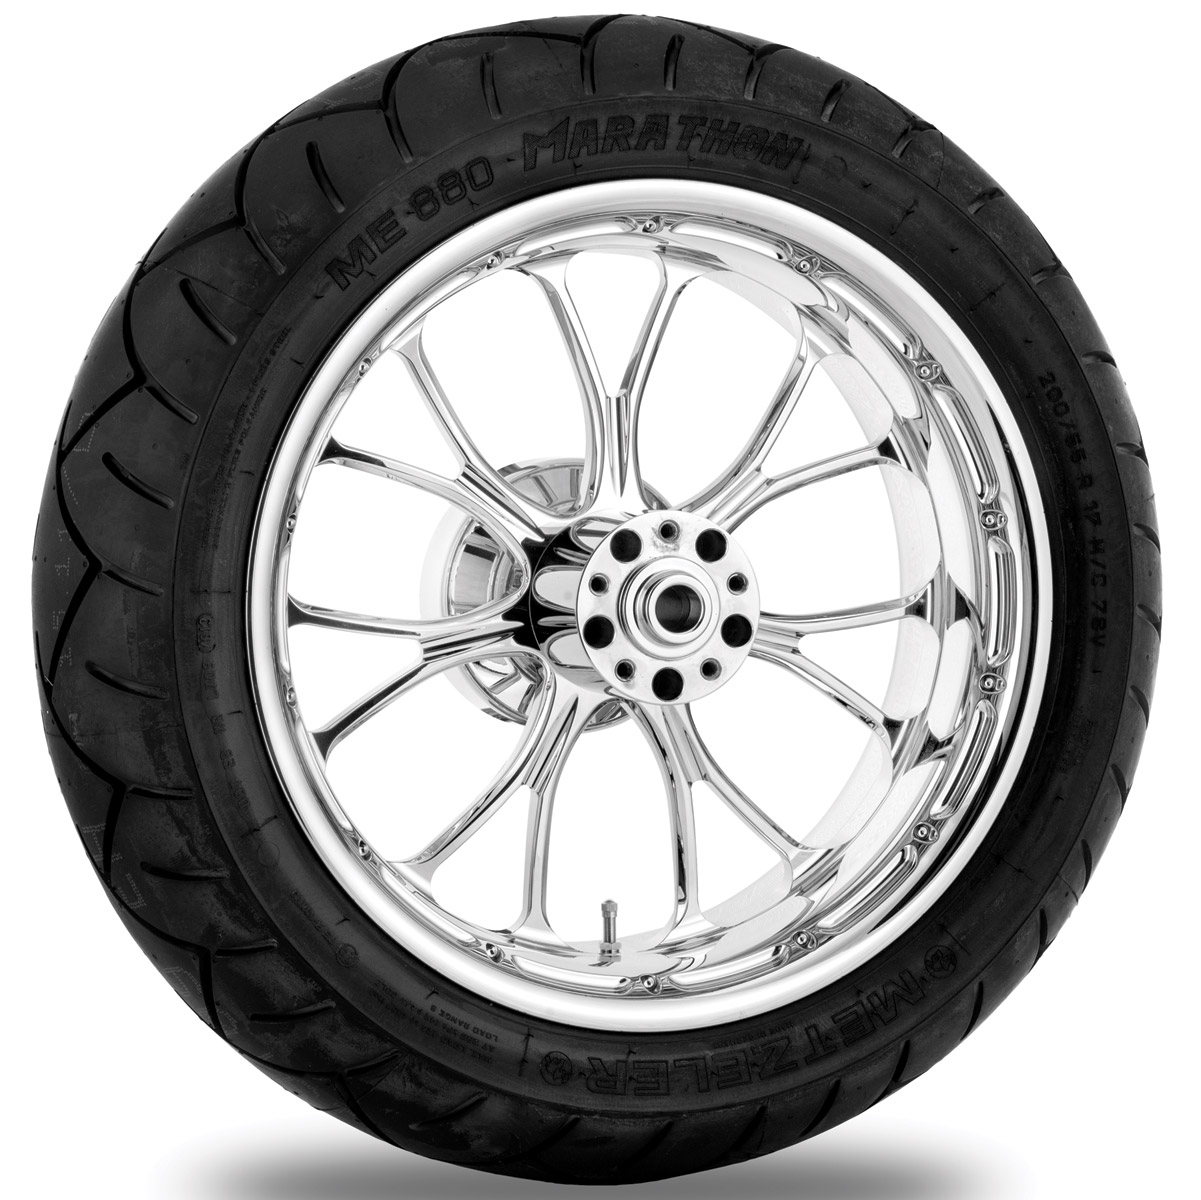 Performance Machine Heathen Chrome Rear Wheel Package, 17″ x 6″ with ABS